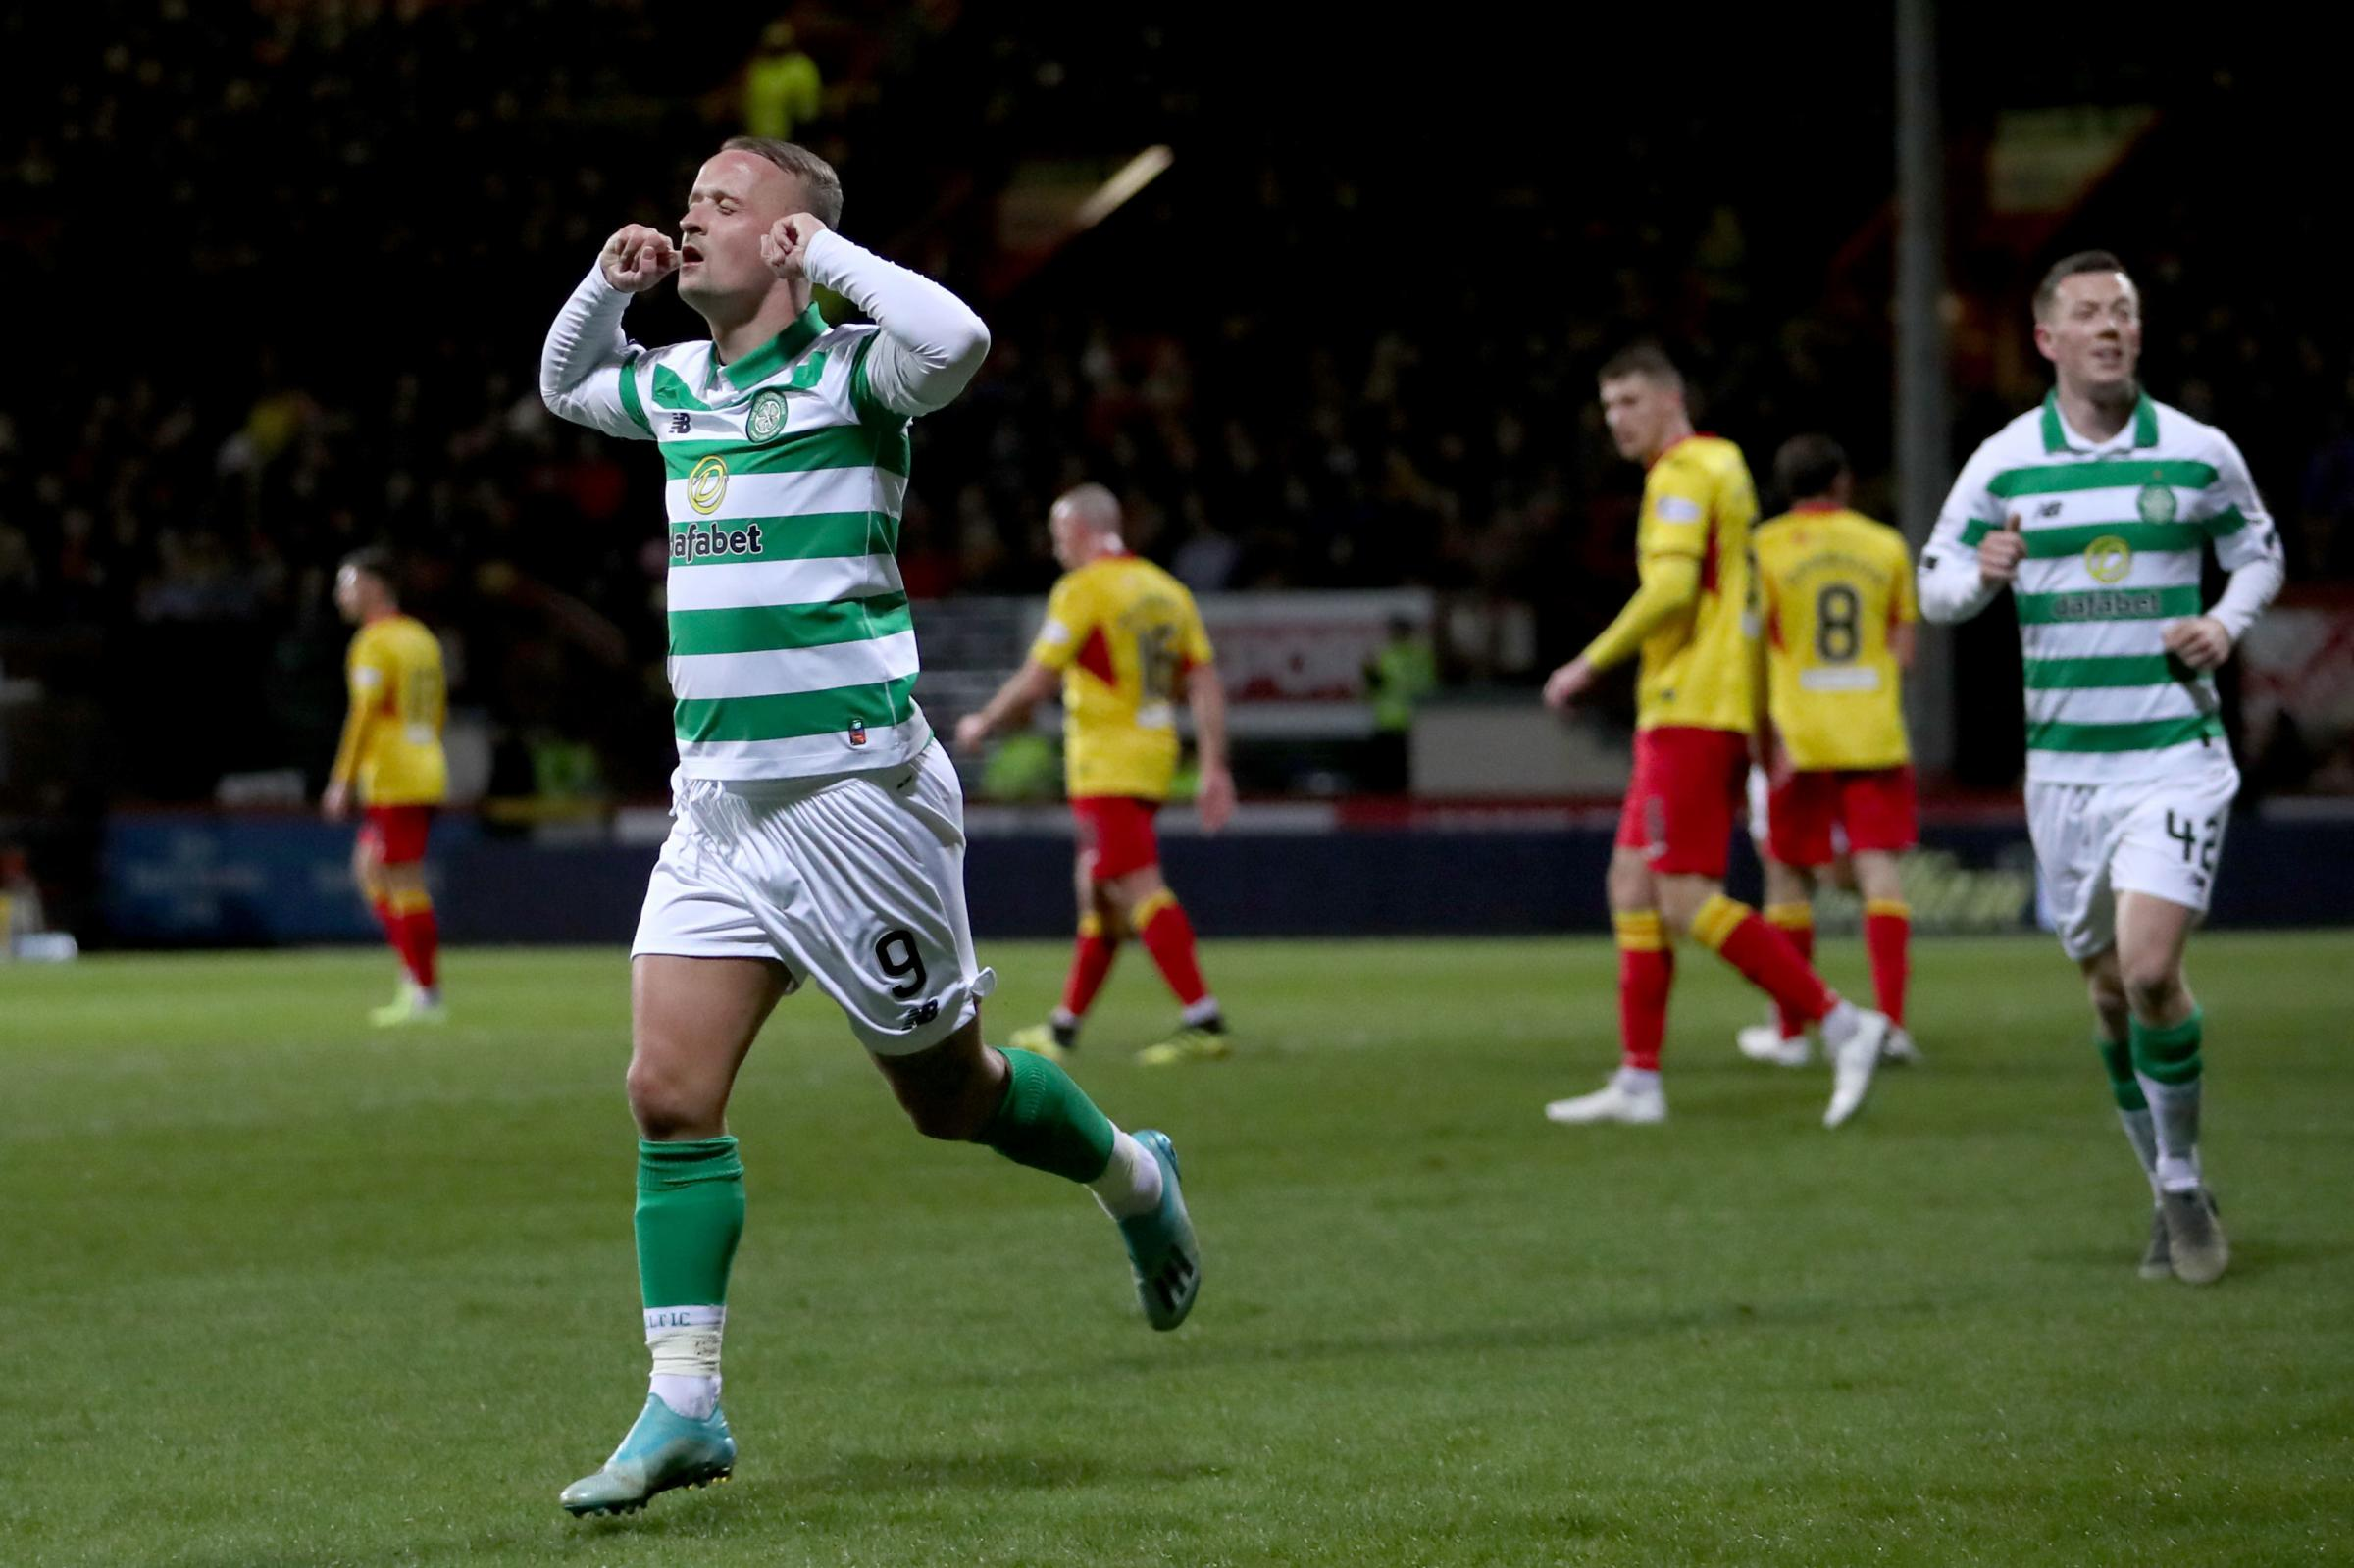 Partick Thistle 1 Celtic 2: Rumours of Griffiths' Celtic demise may be exaggerated as he helps holders through